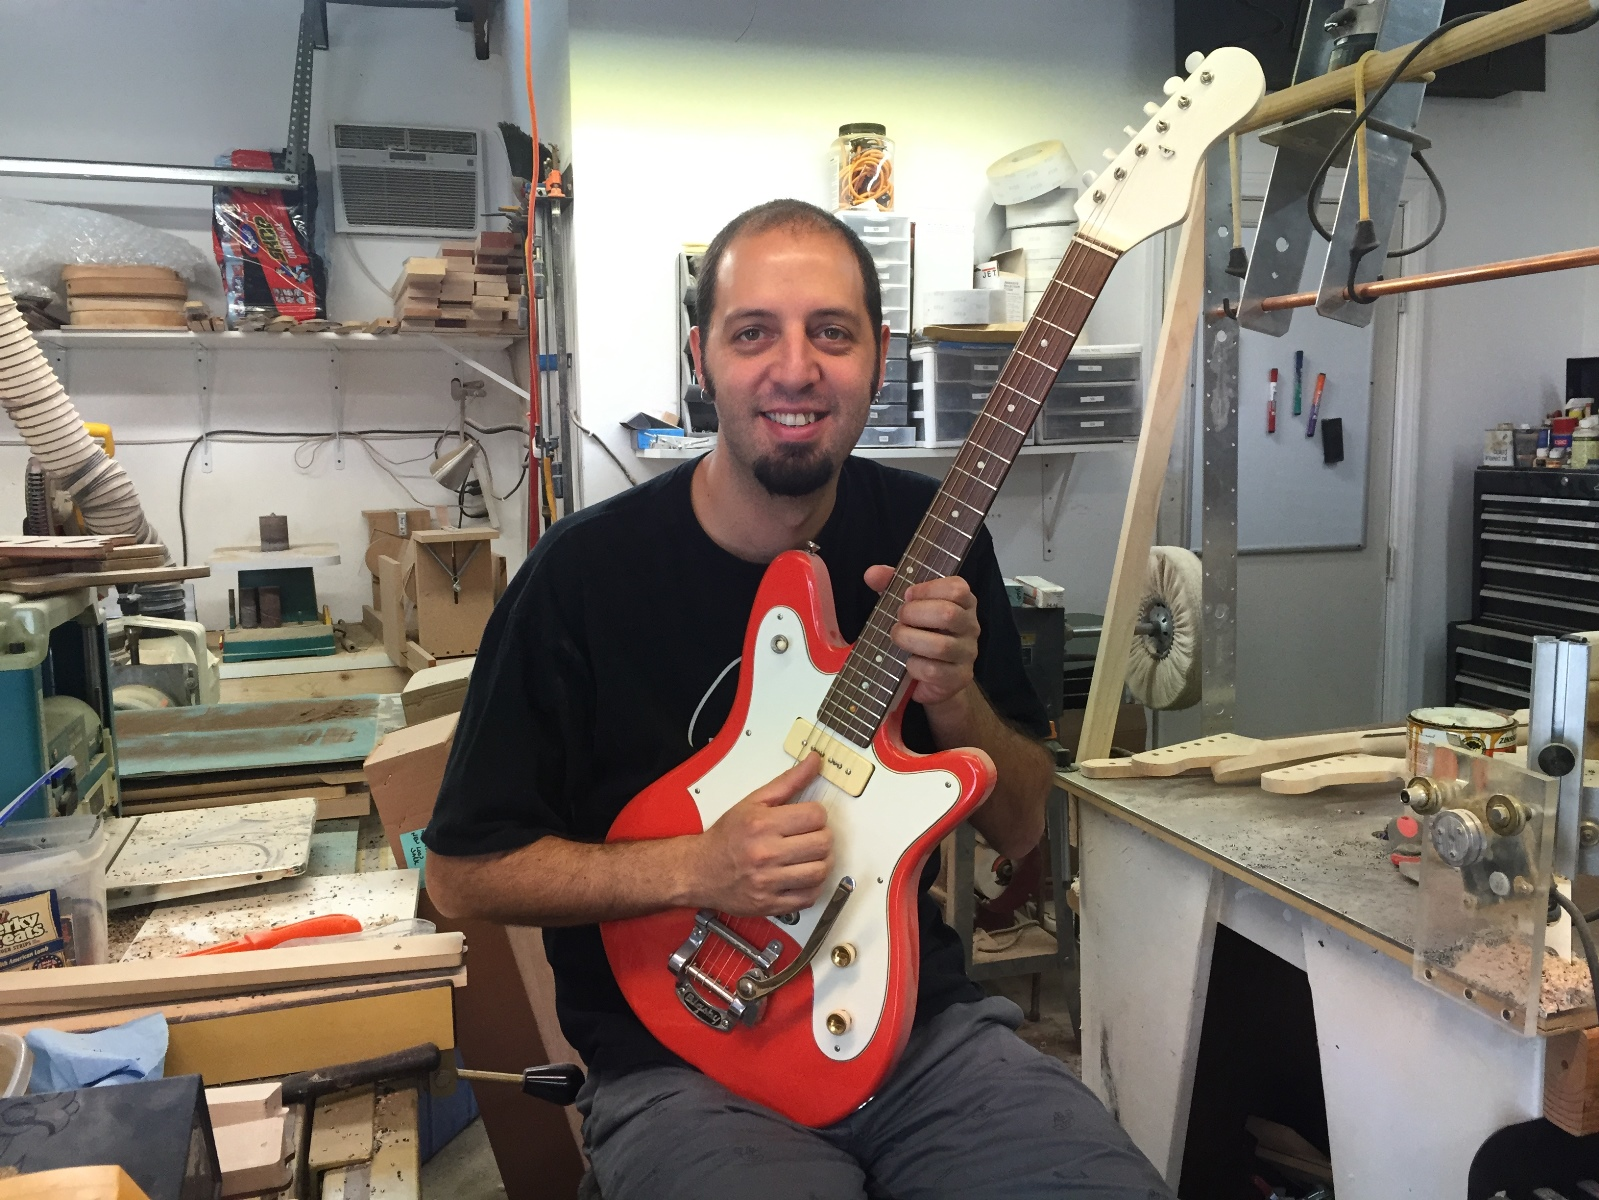 Avishay Shabat at work in his studio. Photo by Stacey Shabat